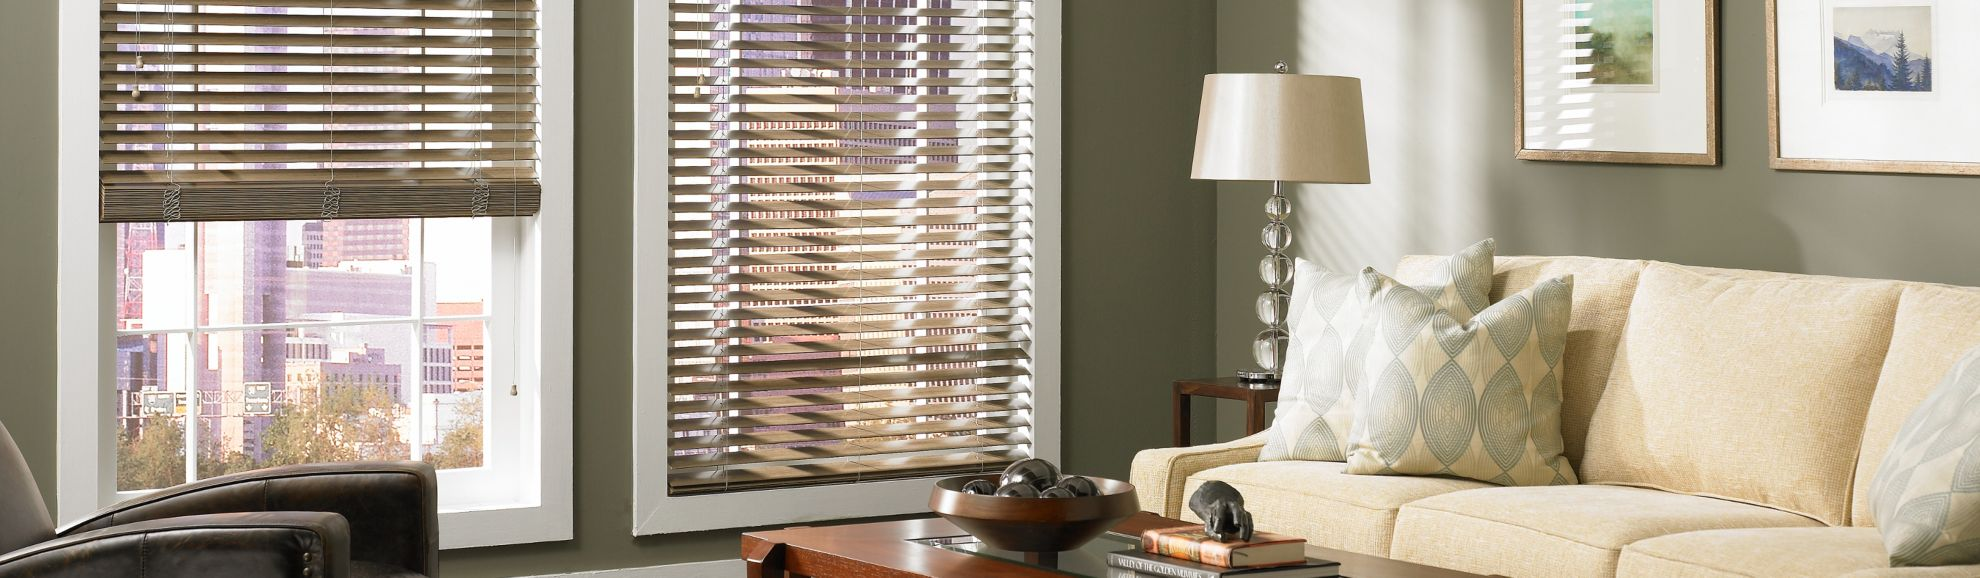 Wood Blinds - Mountain Ash 634 - Living Room